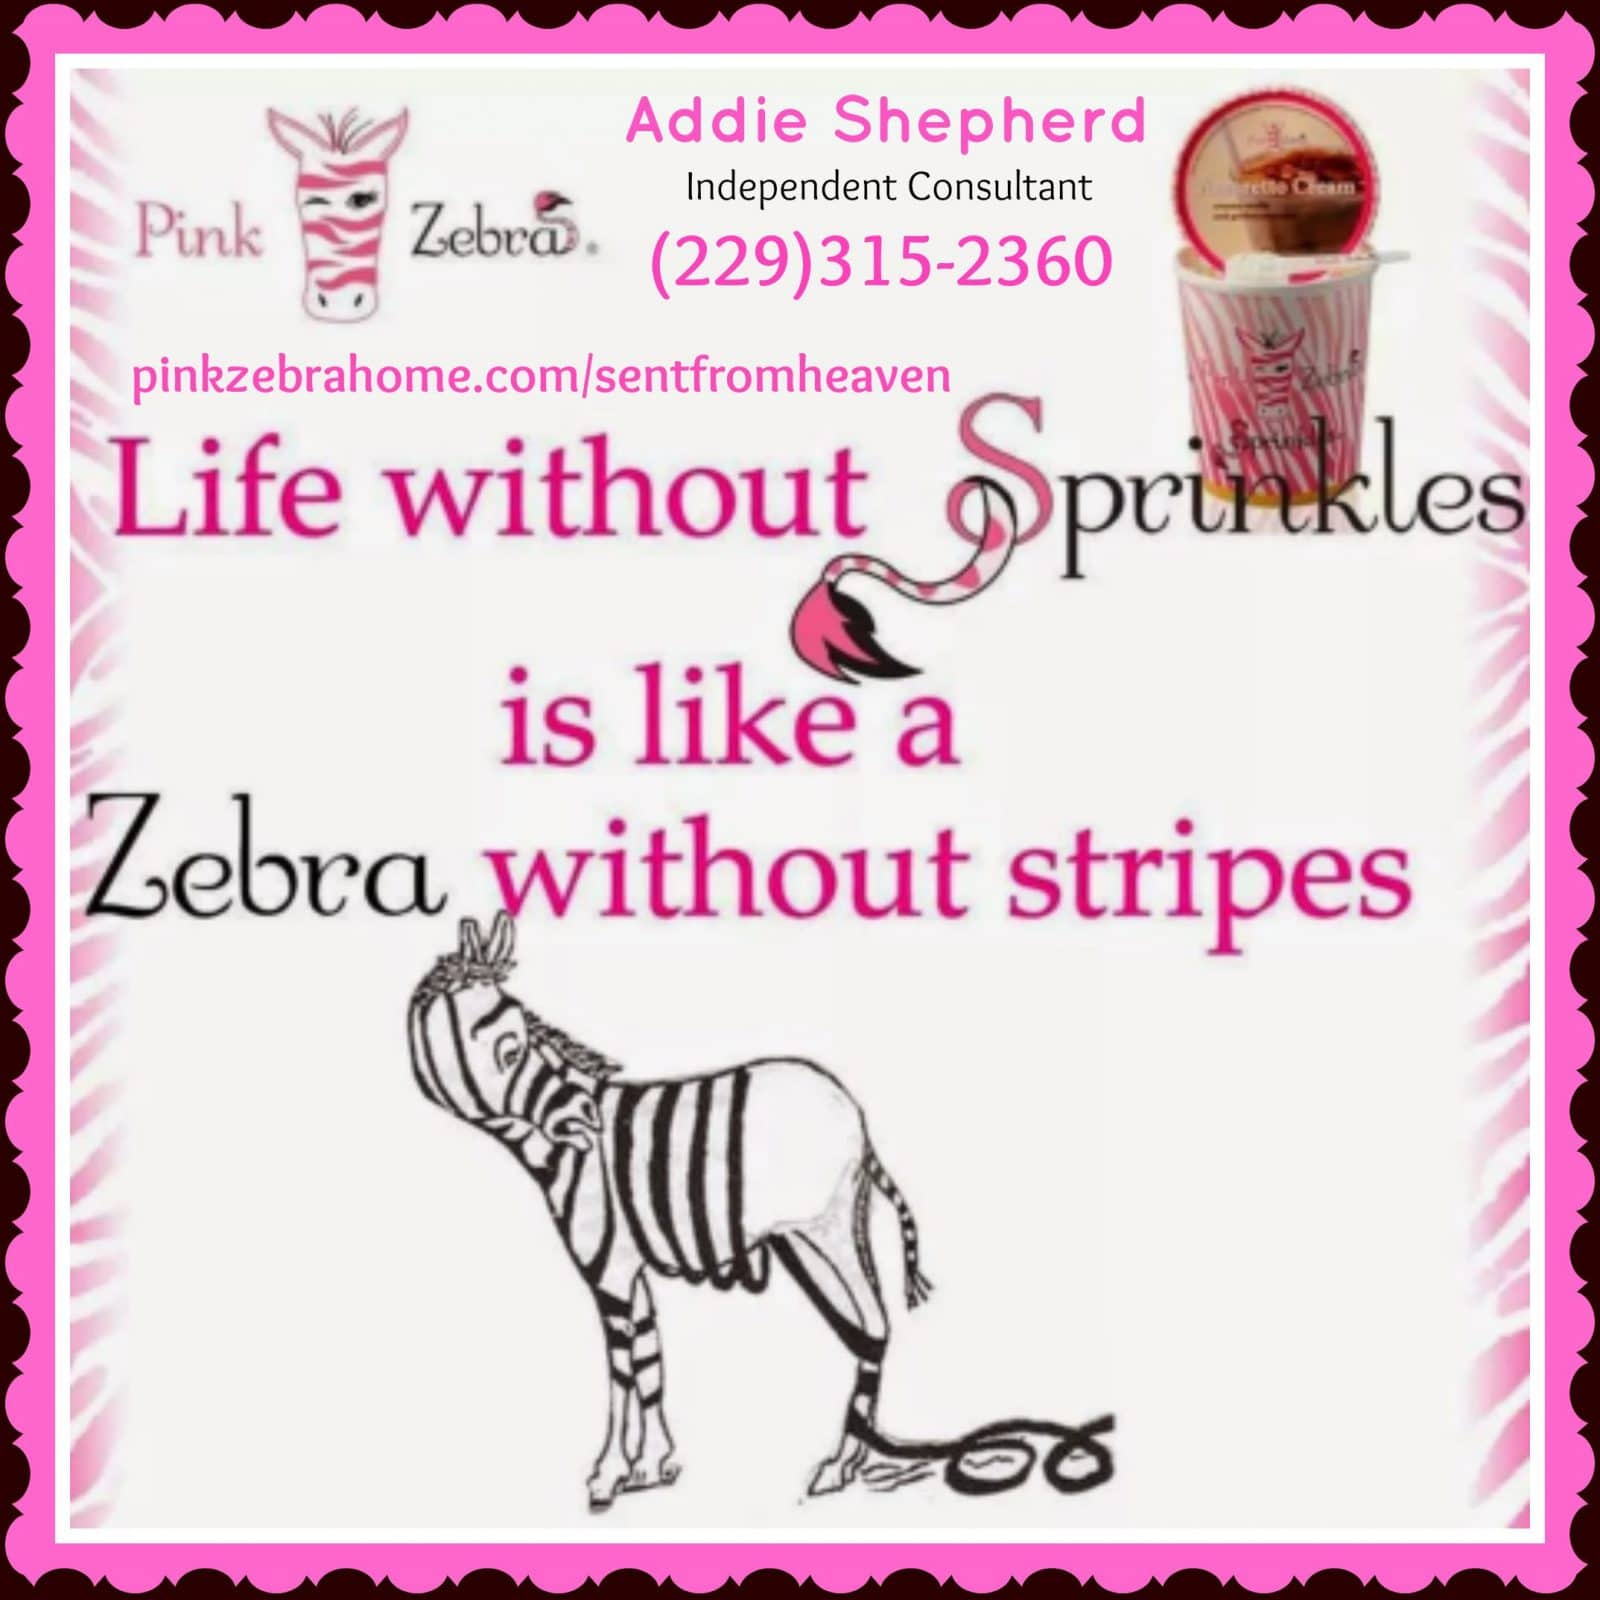 Pink Zebra Work at Home Business